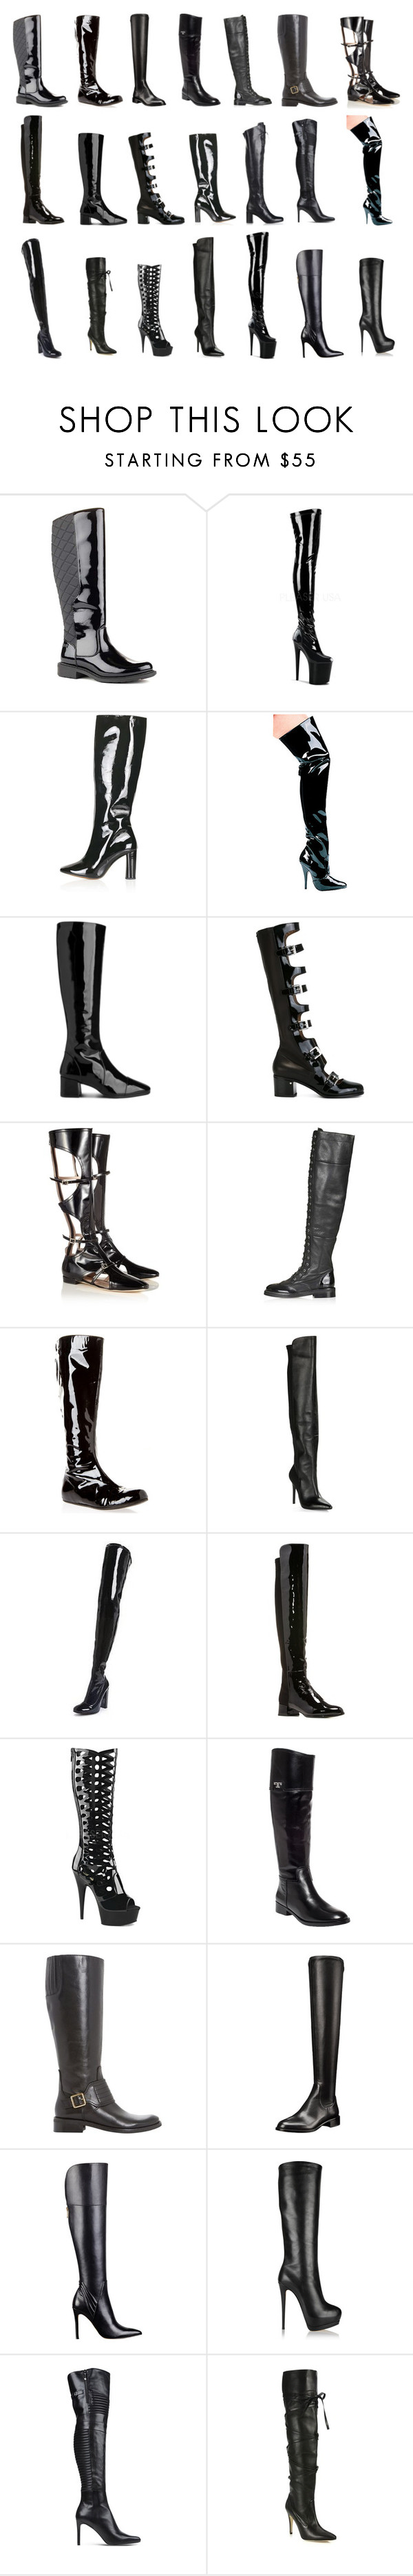 """""""Leather boots - how high do you like them?"""" by leatherboy ❤ liked on Polyvore featuring Cougar, Topshop, Whistles, Laurence Dacade, Carven, Lanvin, Charles by Charles David, Carvela, Stuart Weitzman and Pleaser"""